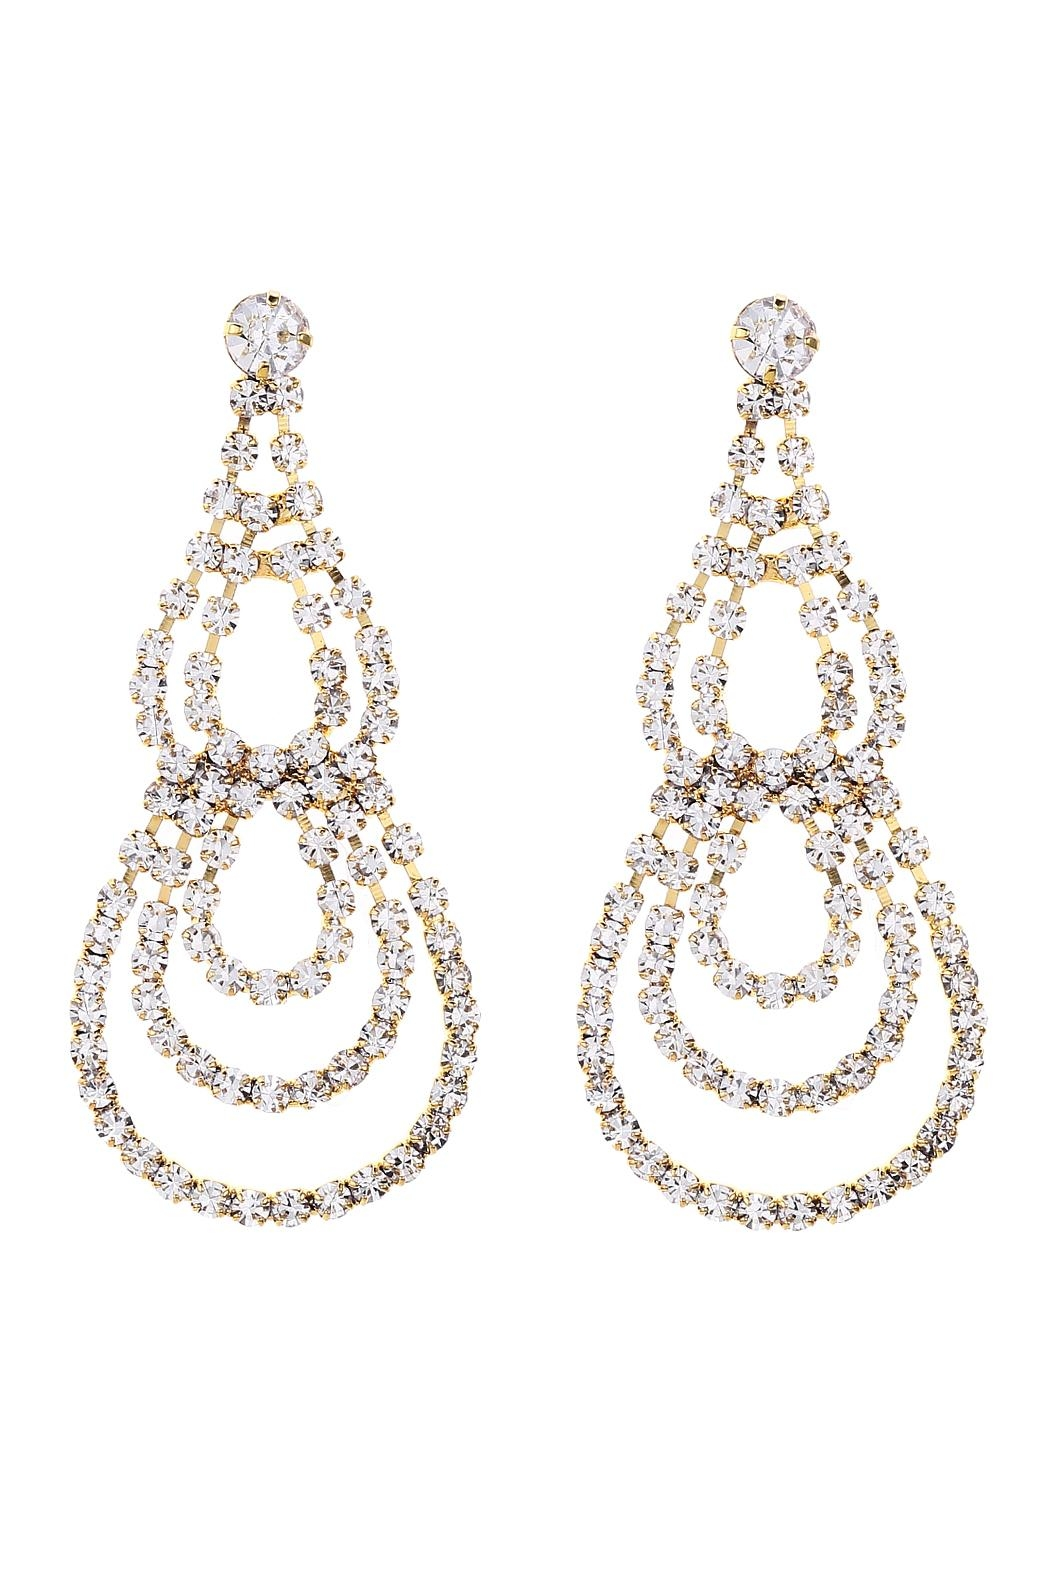 Riah fashion teardrop chandelier earrings from california shoptiques riah fashion teardrop chandelier earrings front cropped image arubaitofo Choice Image